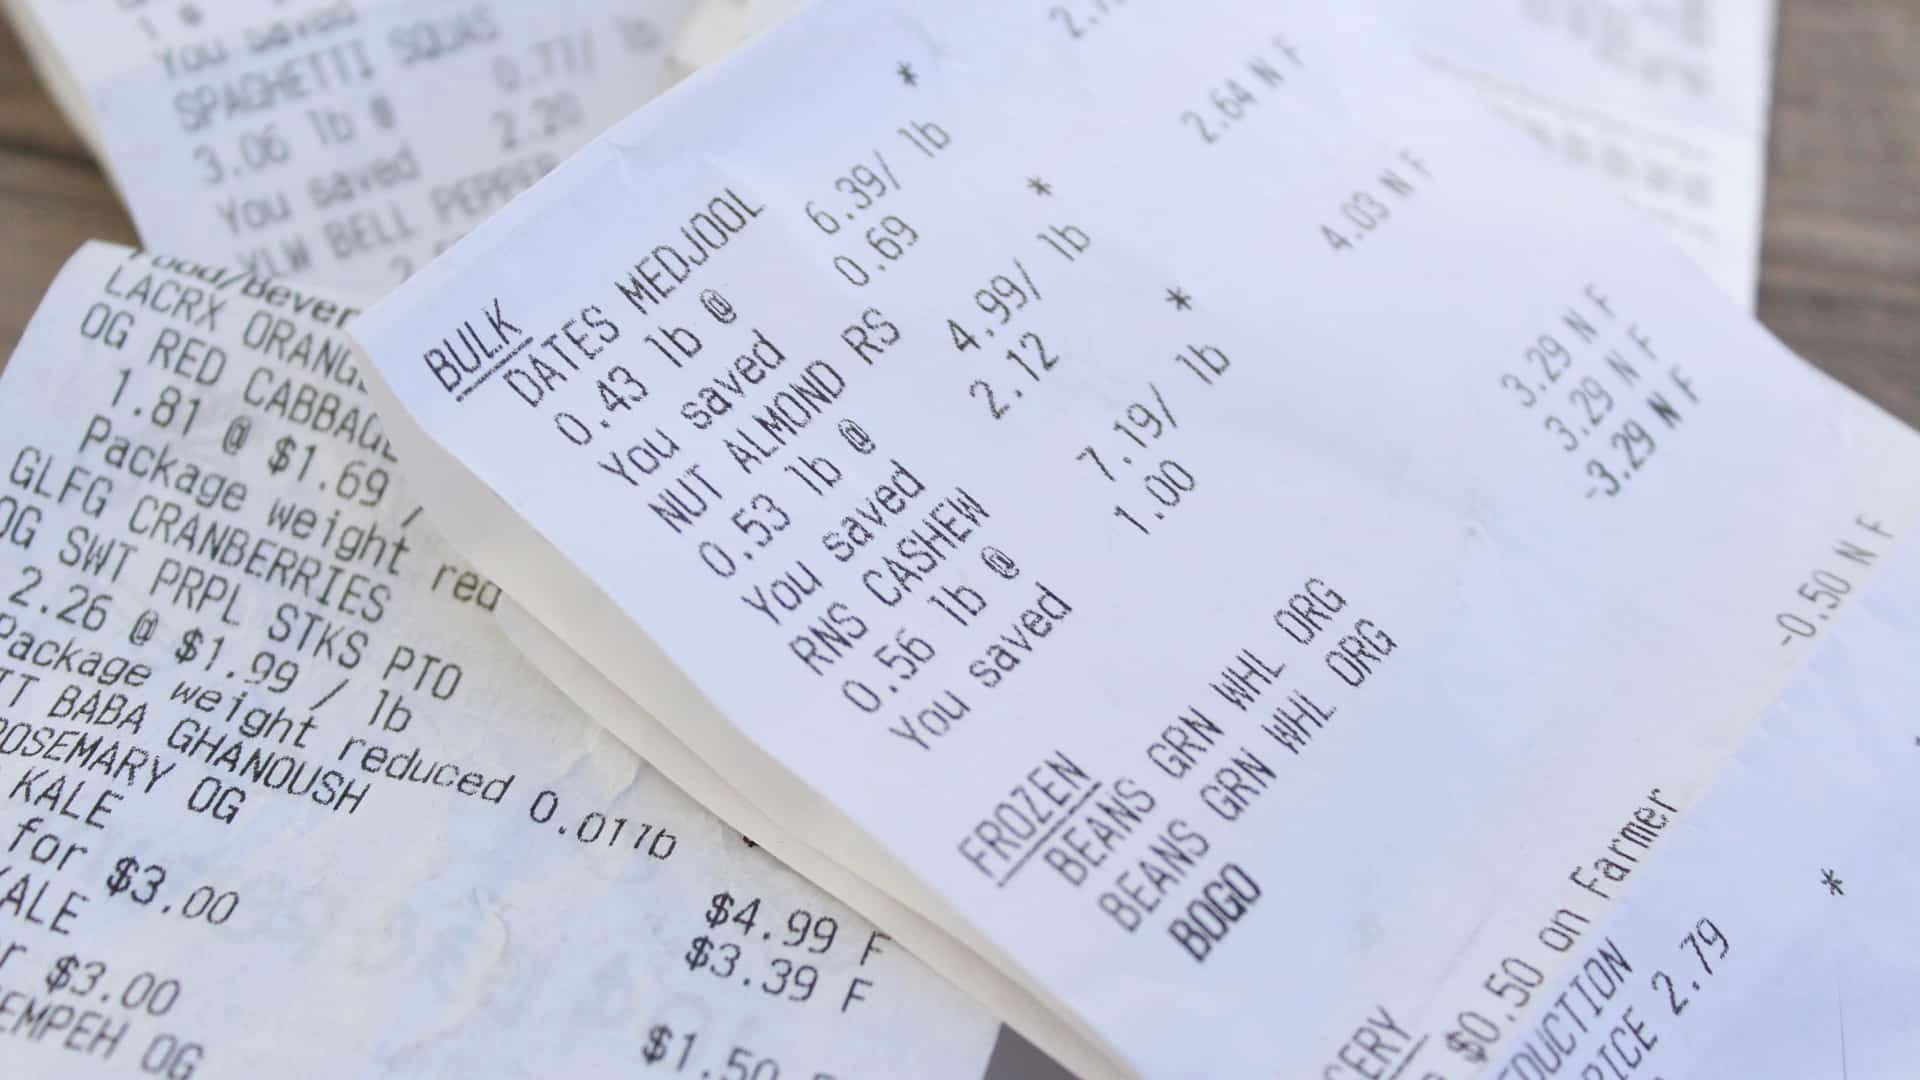 How to Get A Receipt Unique Bpa On Receipts Getting Under Our Skin